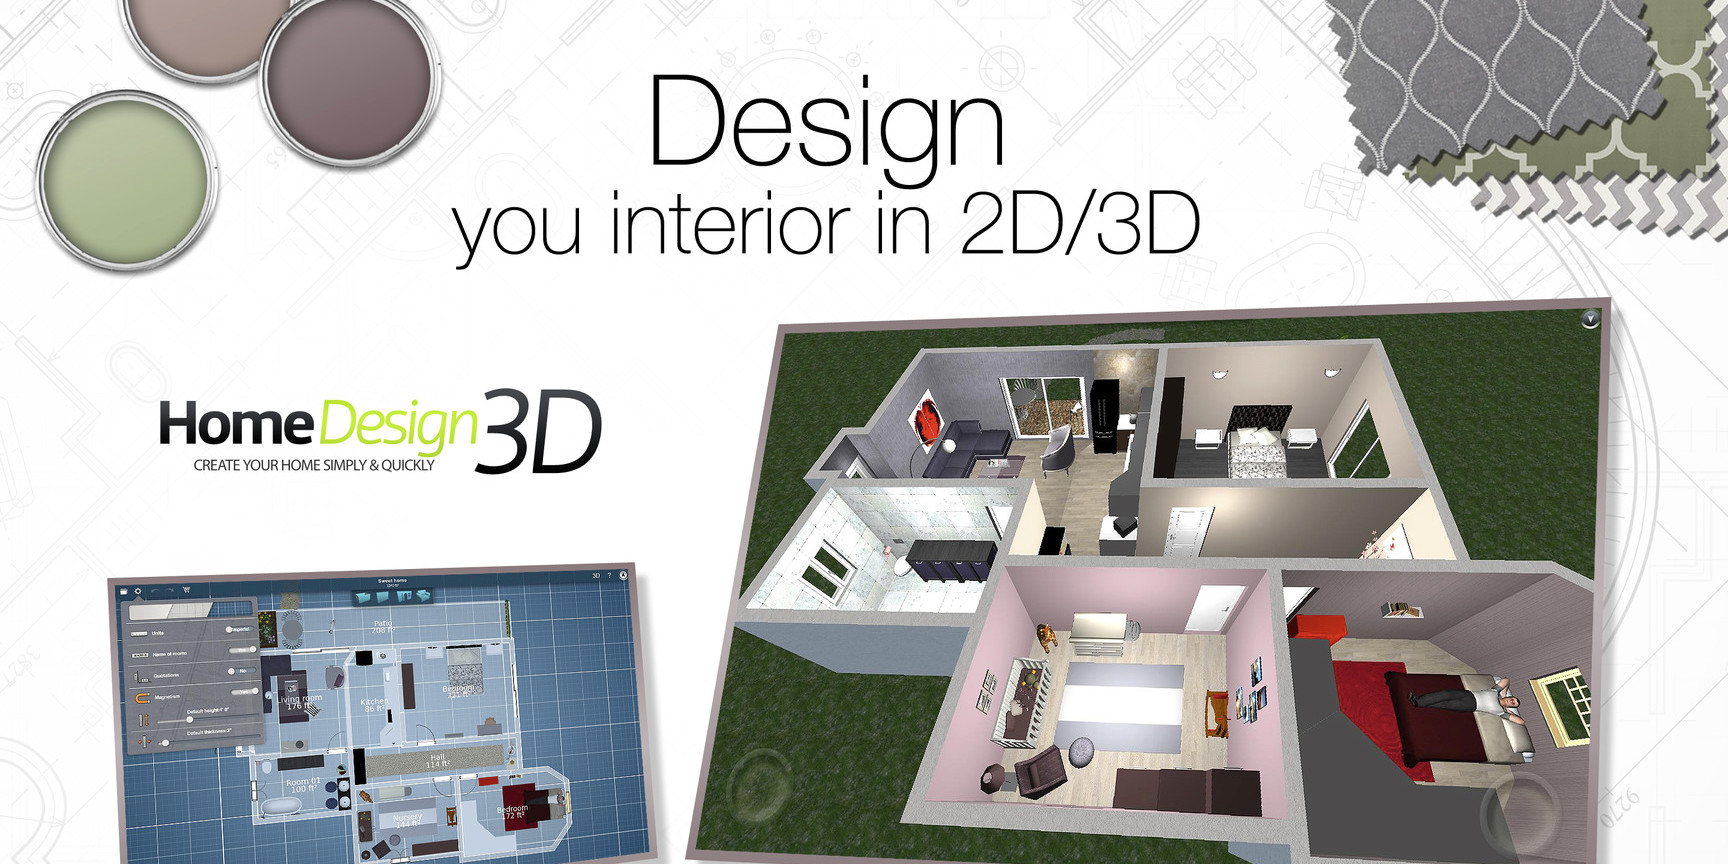 Superieur Home Designer 3D For IOS/Mac Goes Free For The First Time, GOLD Version $1  (Reg. Up To $10)